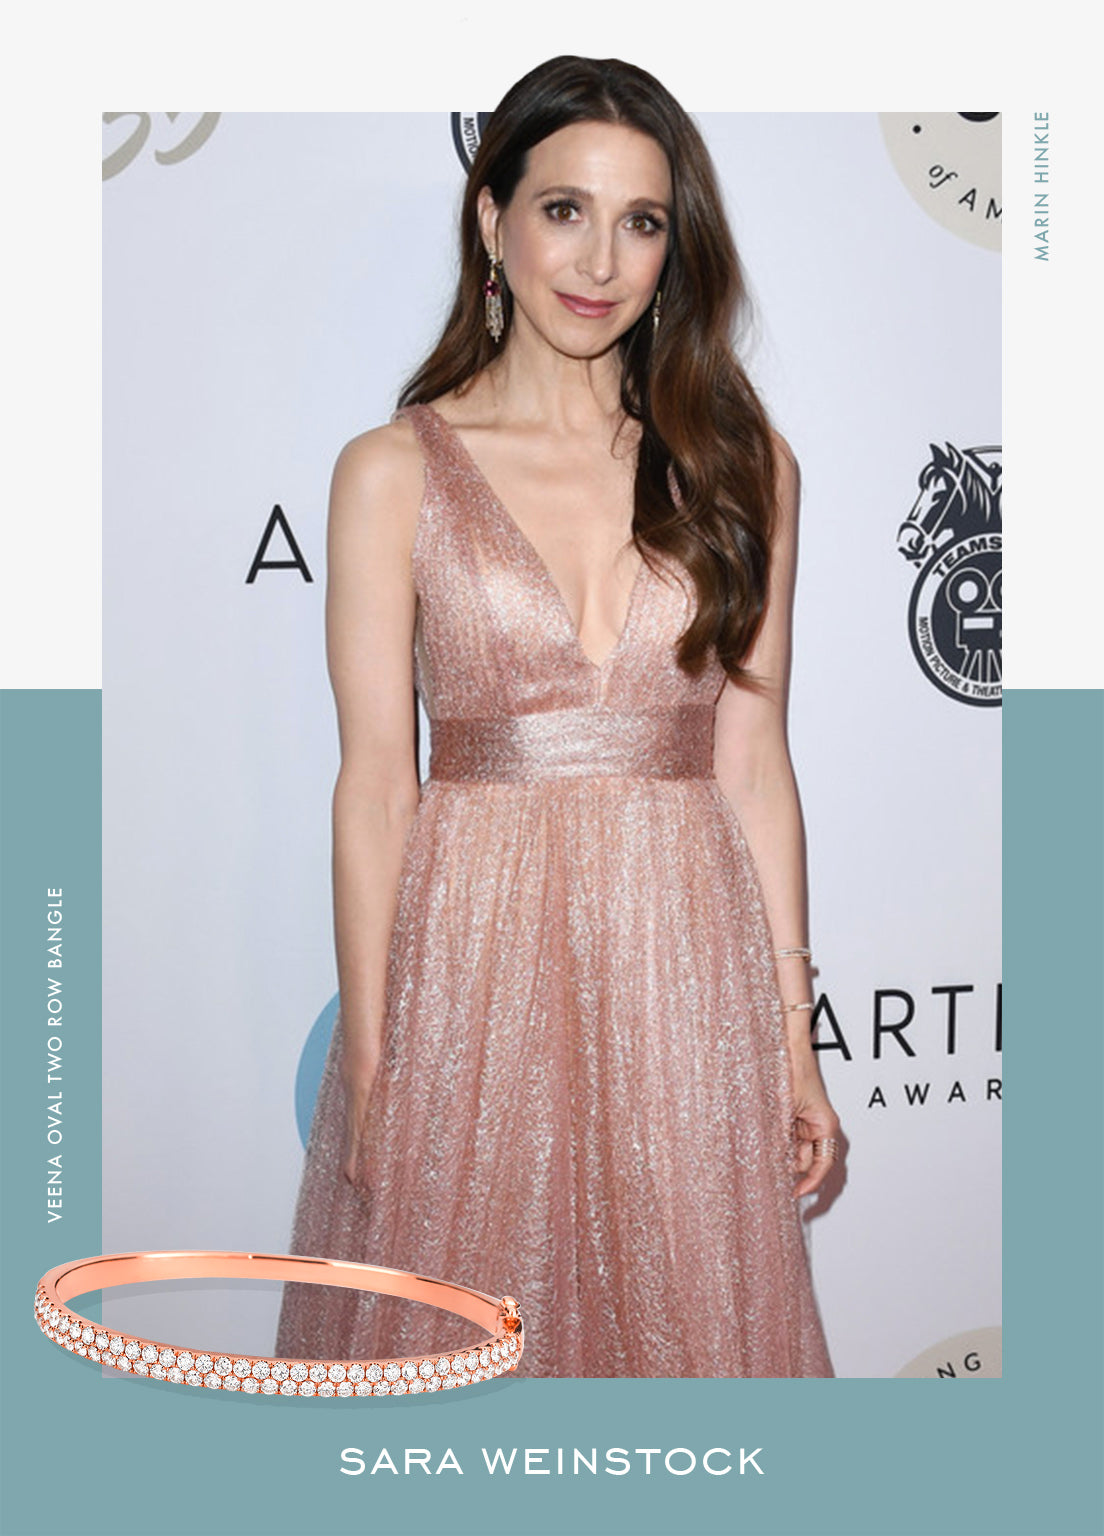 Marin Hinkle at the 35th Annual Artios Awards - Sara Weinstock